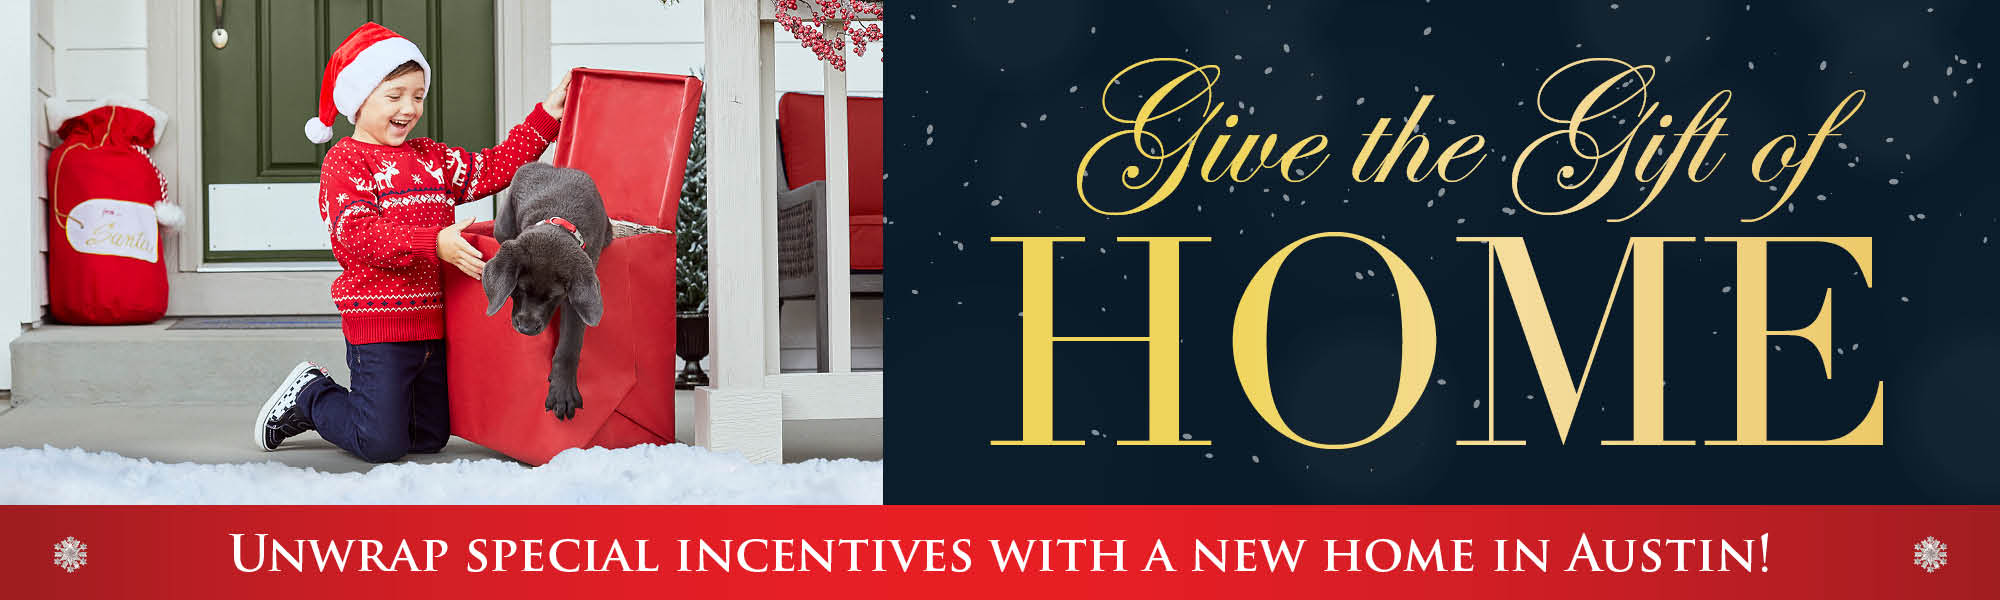 Give the Gift of Home in Austin